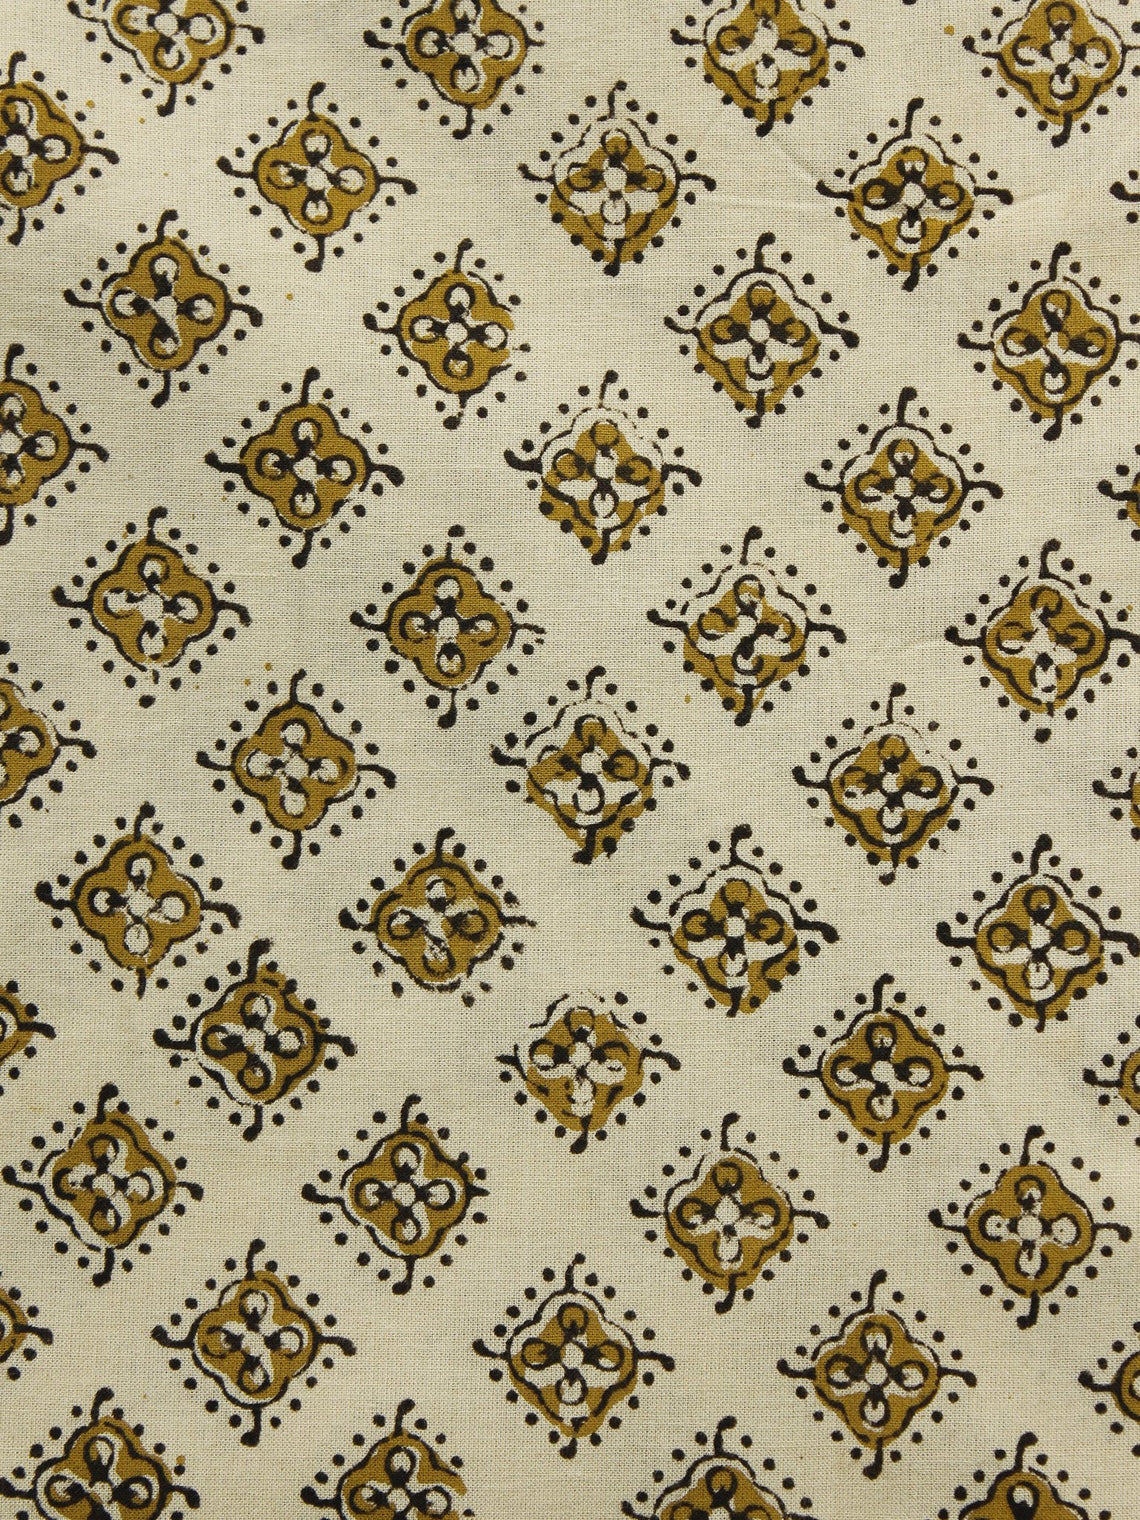 Beige Olive Green Black Hand Block Printed Cotton Fabric Per Meter - F001F1074